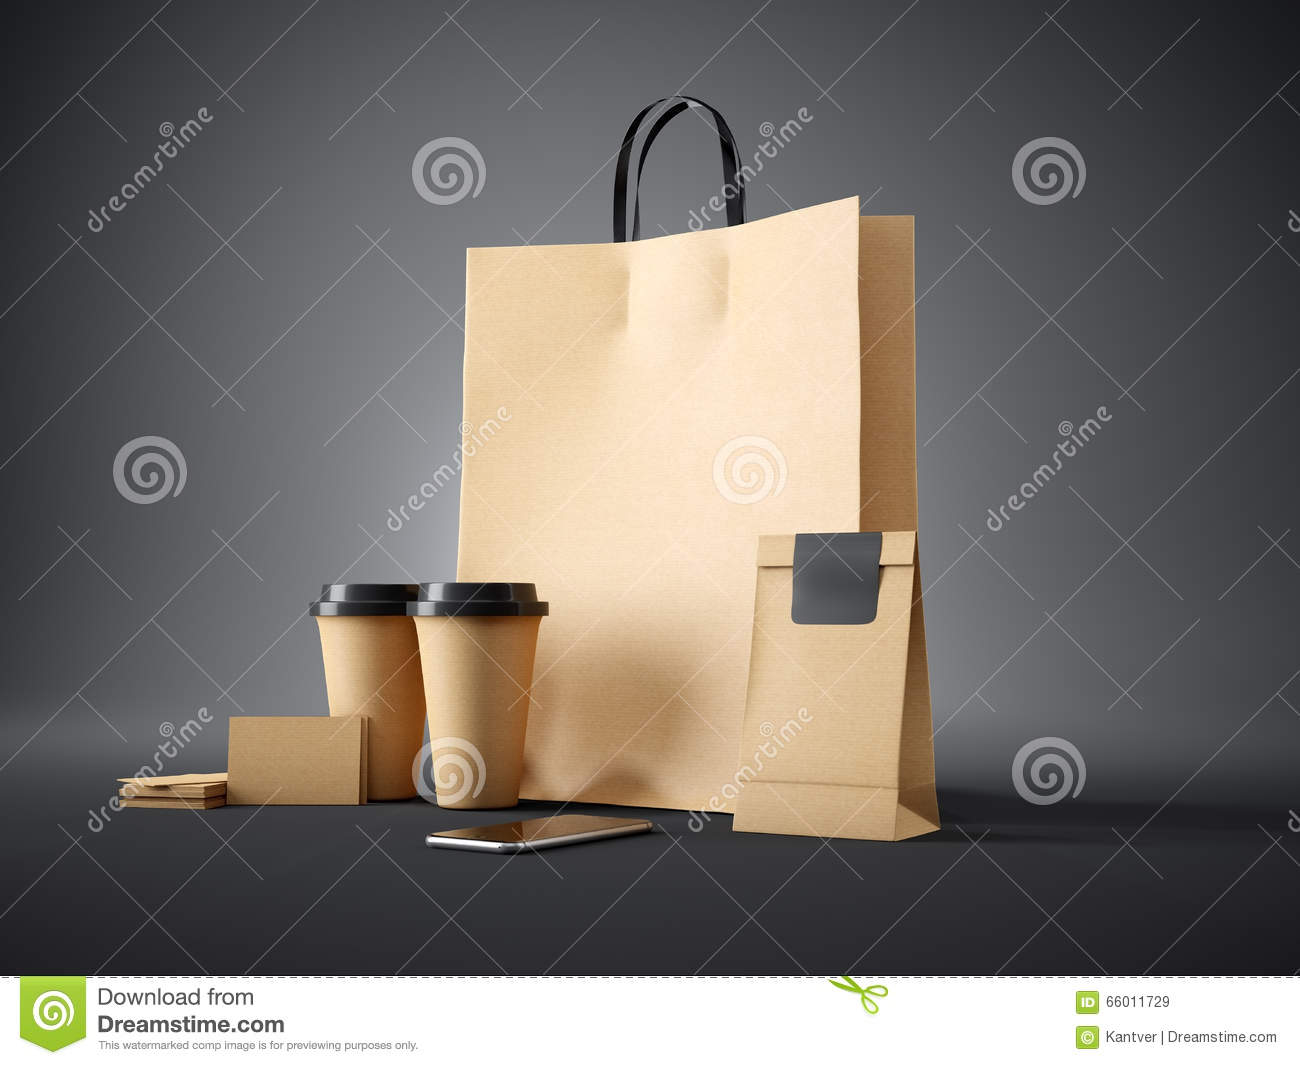 Set of craft shopping bag take away cups paper package blank set of craft shopping bag craft take away cups craft package blank business cards and generic design smartphone dark background colourmoves